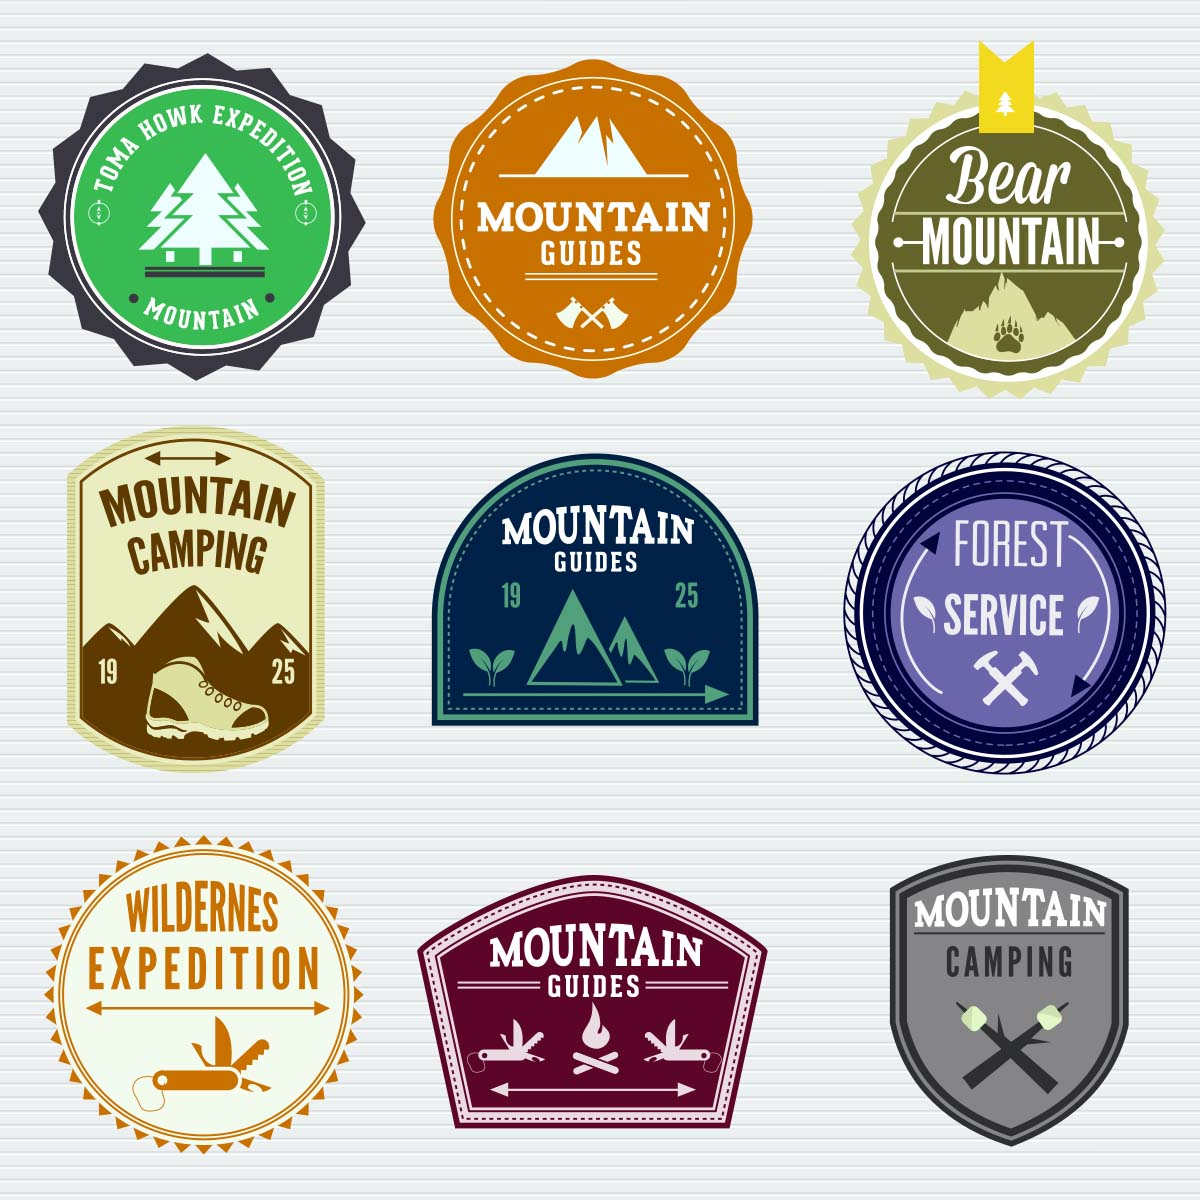 Free vector set with decorative badges with outdoor adventures.